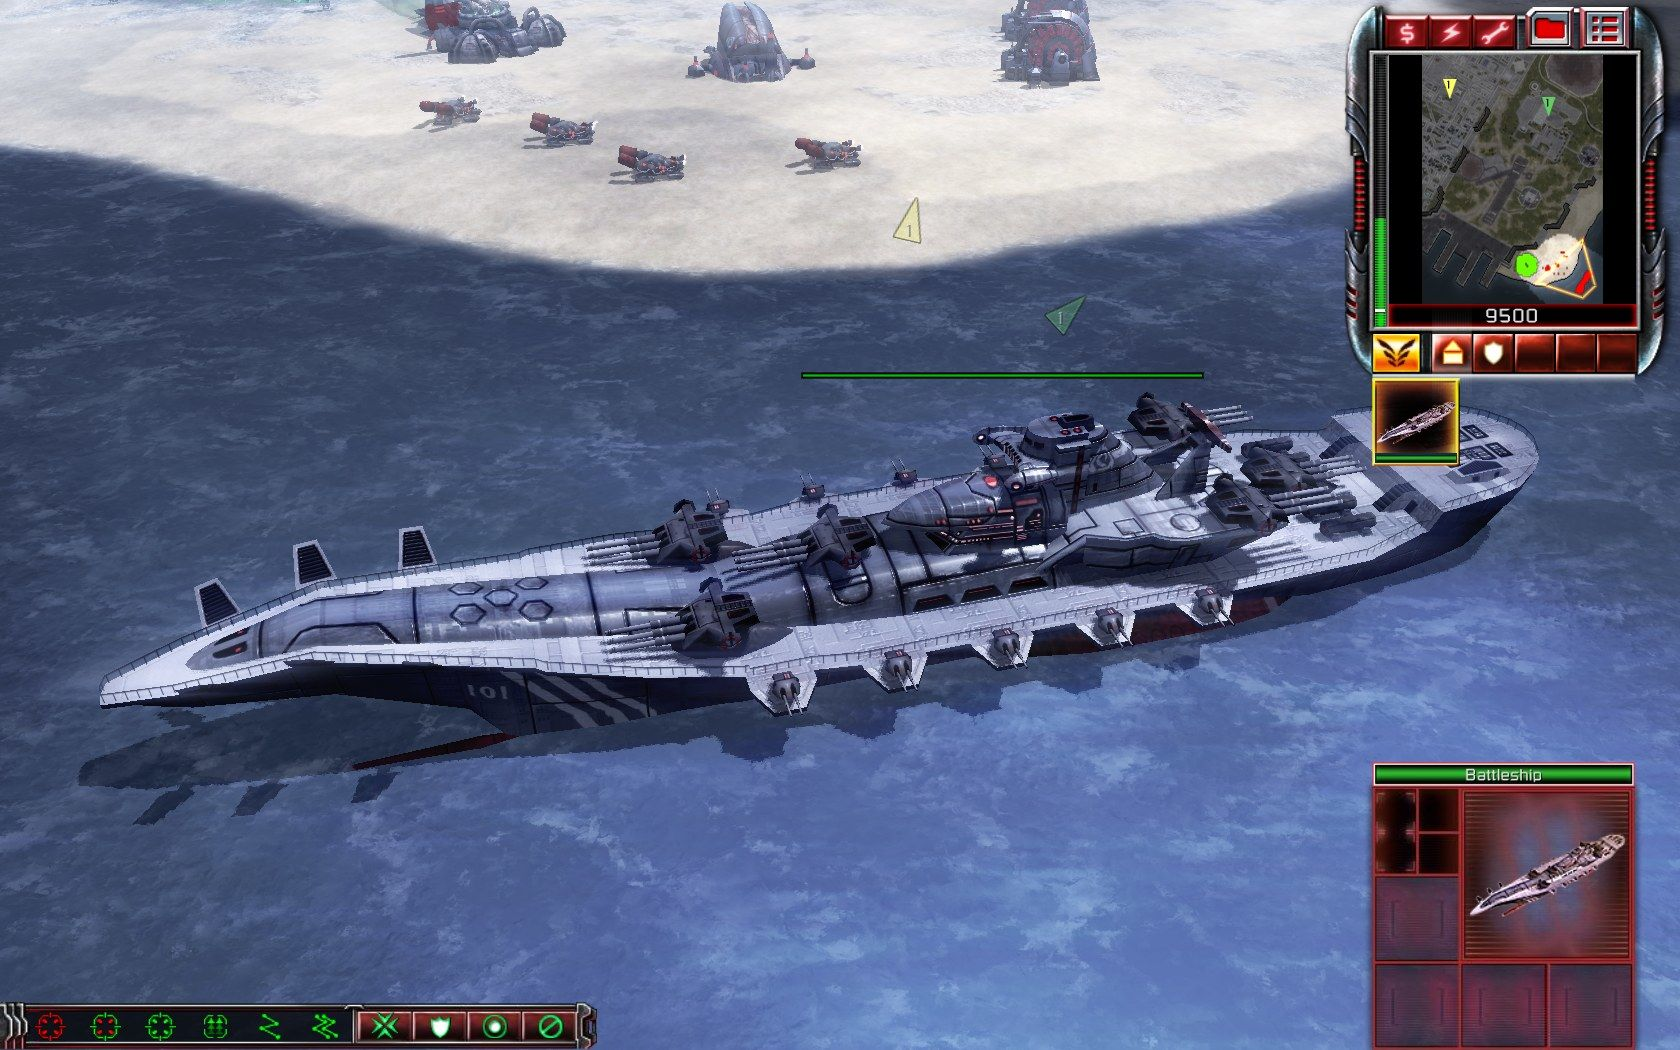 Command & Conquer 3: Kane's Wrath Windows Nod battleship as good as dead in the water since you cannot use it.